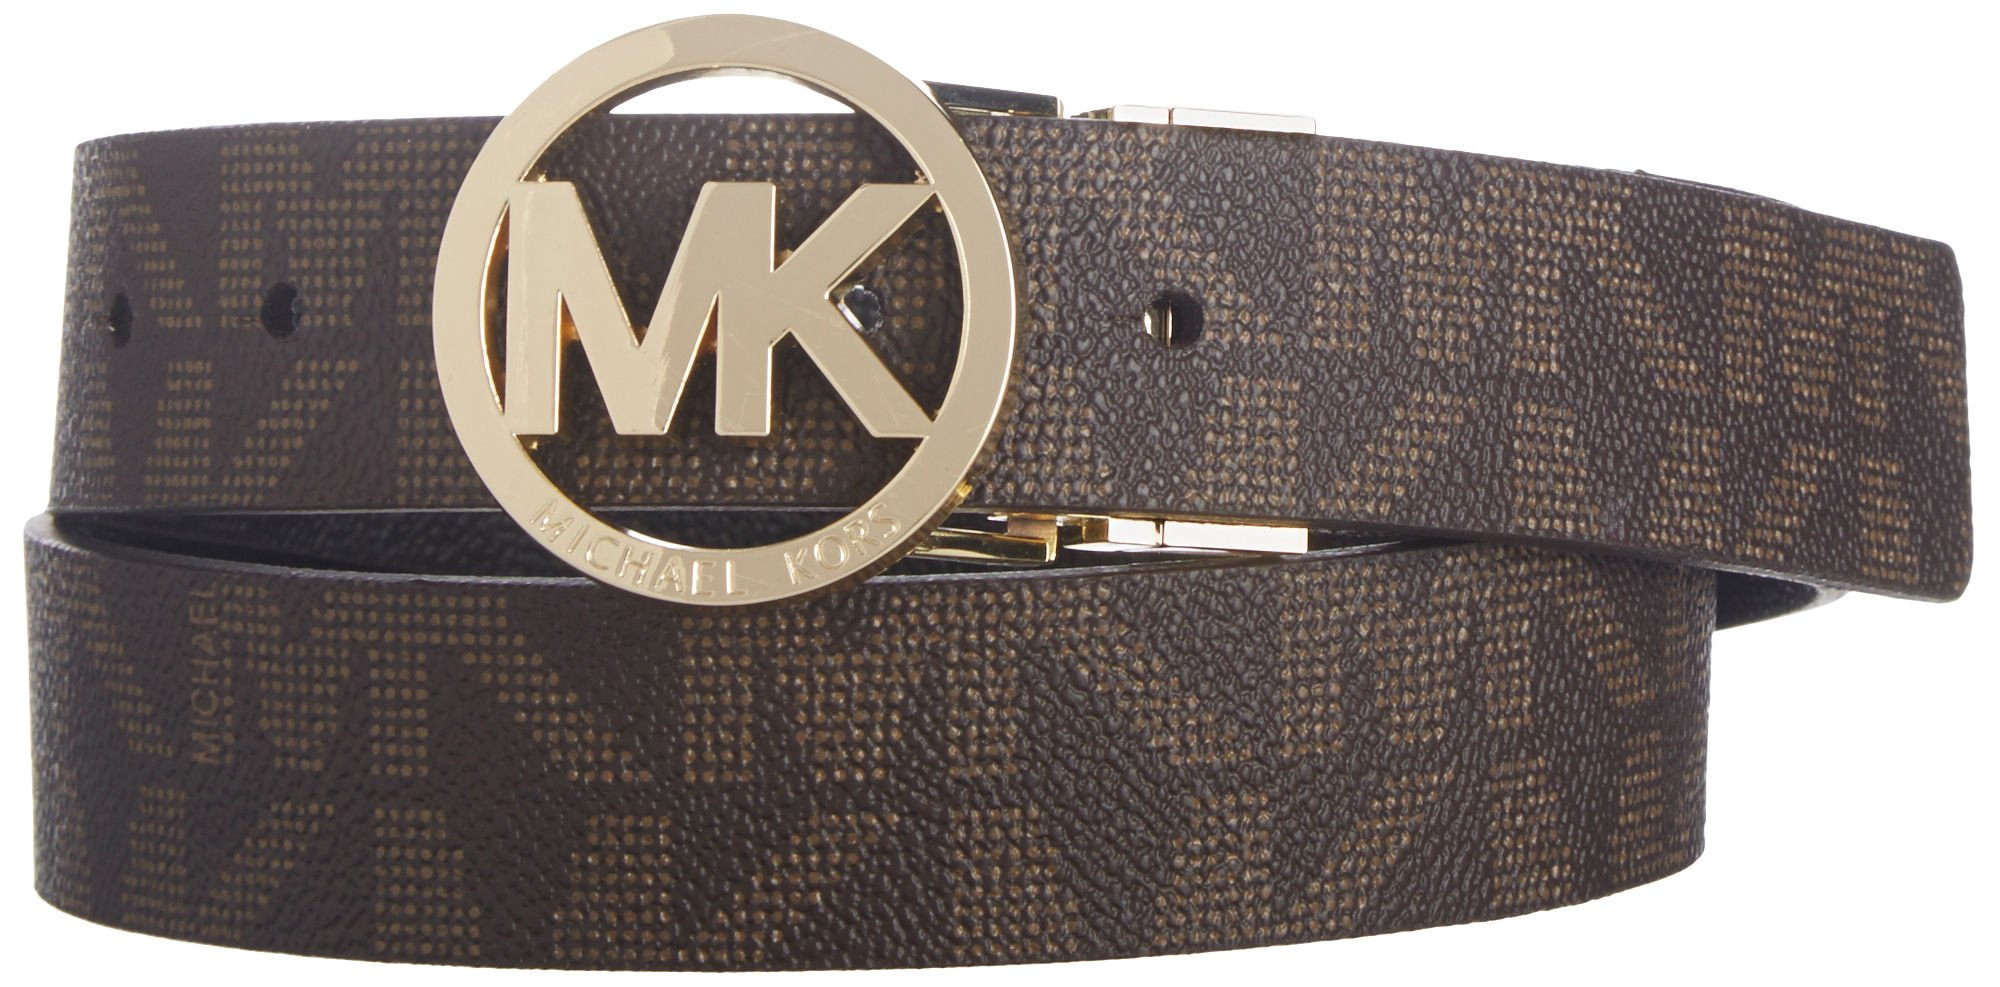 Michael Kors Womens Reversible Belt, Chocolate, Small by Michael Kors